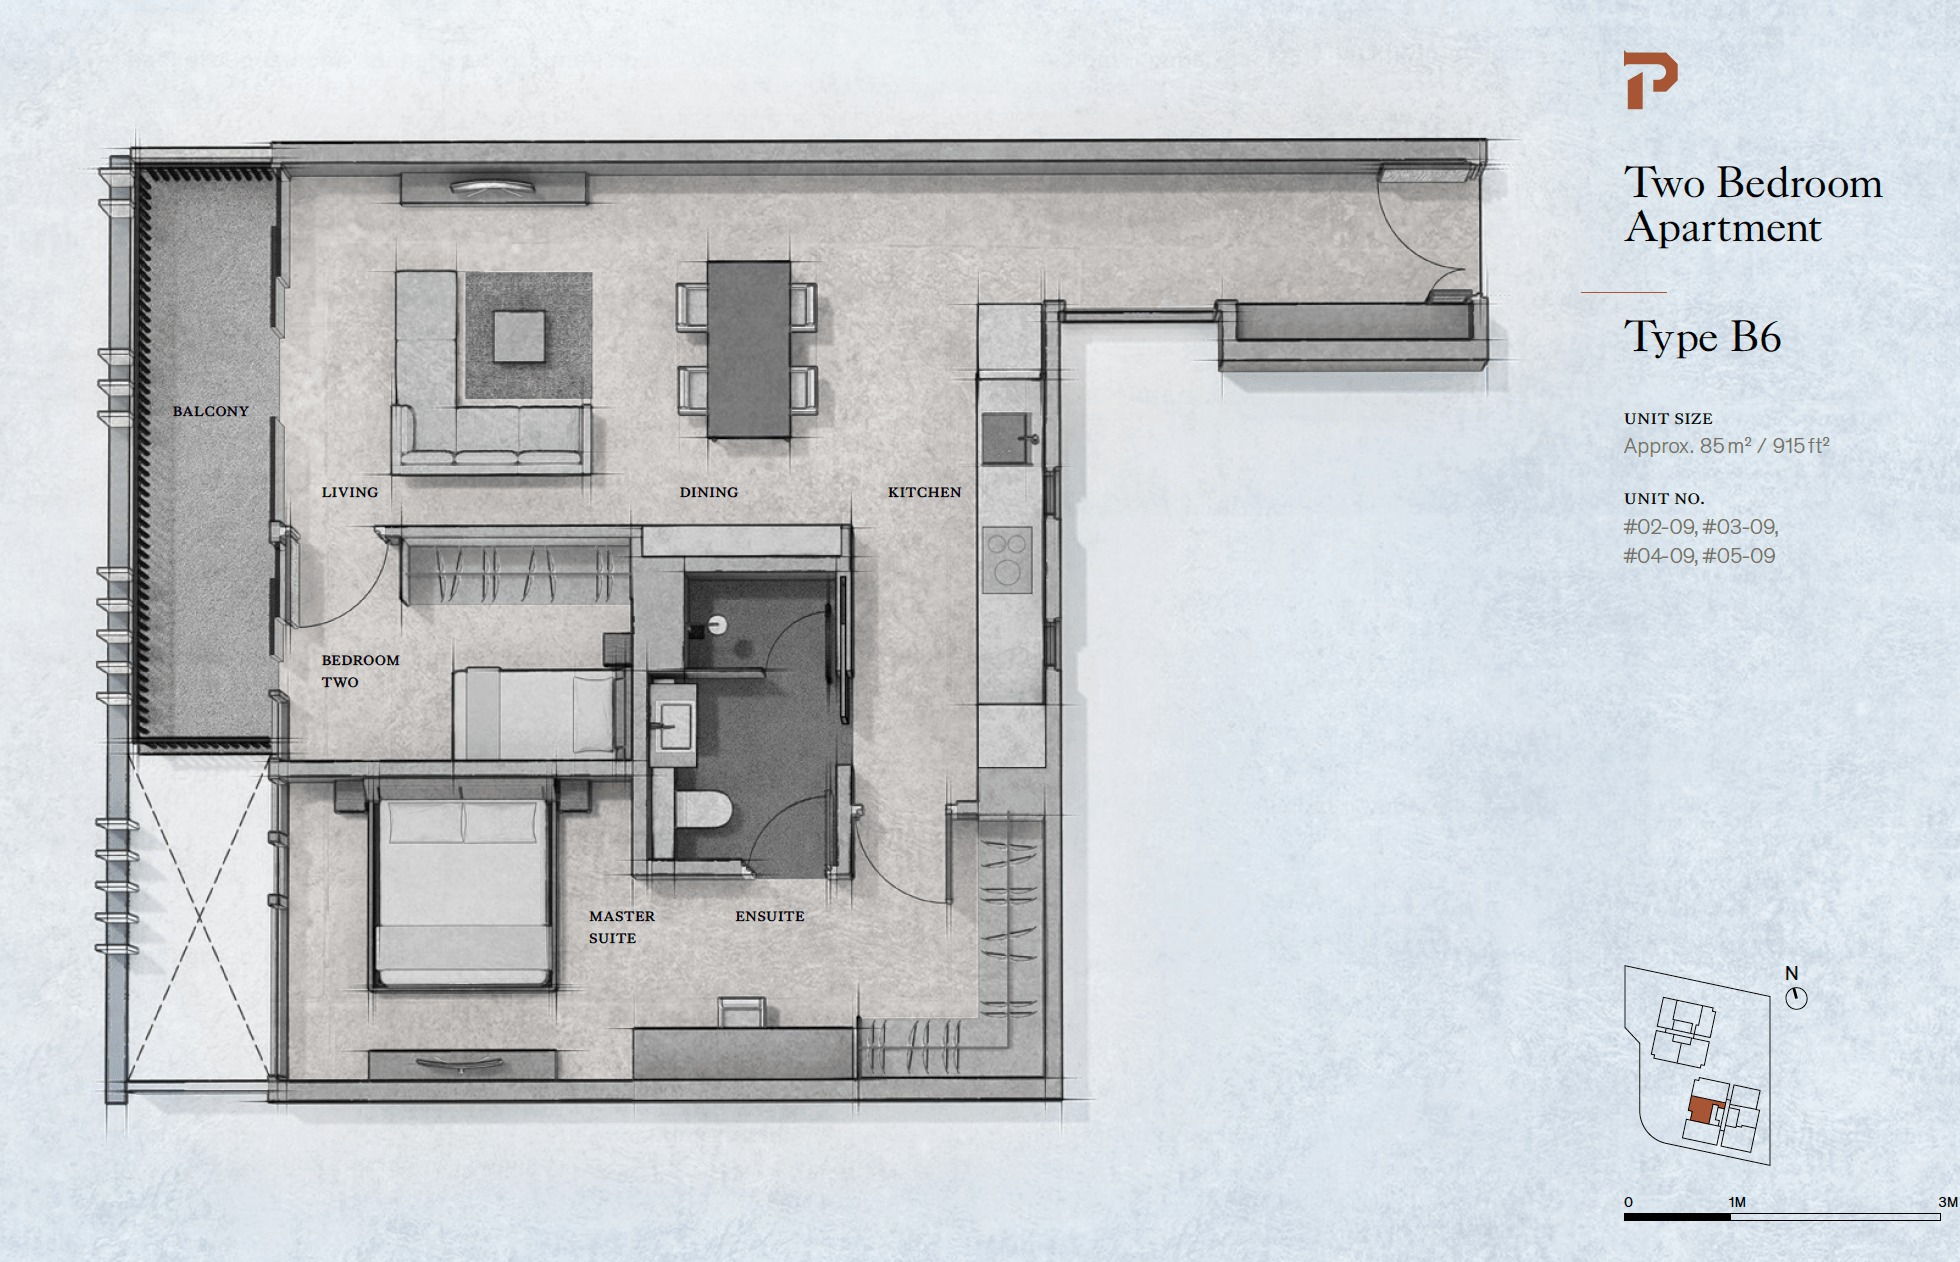 Petit-Jervois-2-bedroom-floor-plan-Type-B6